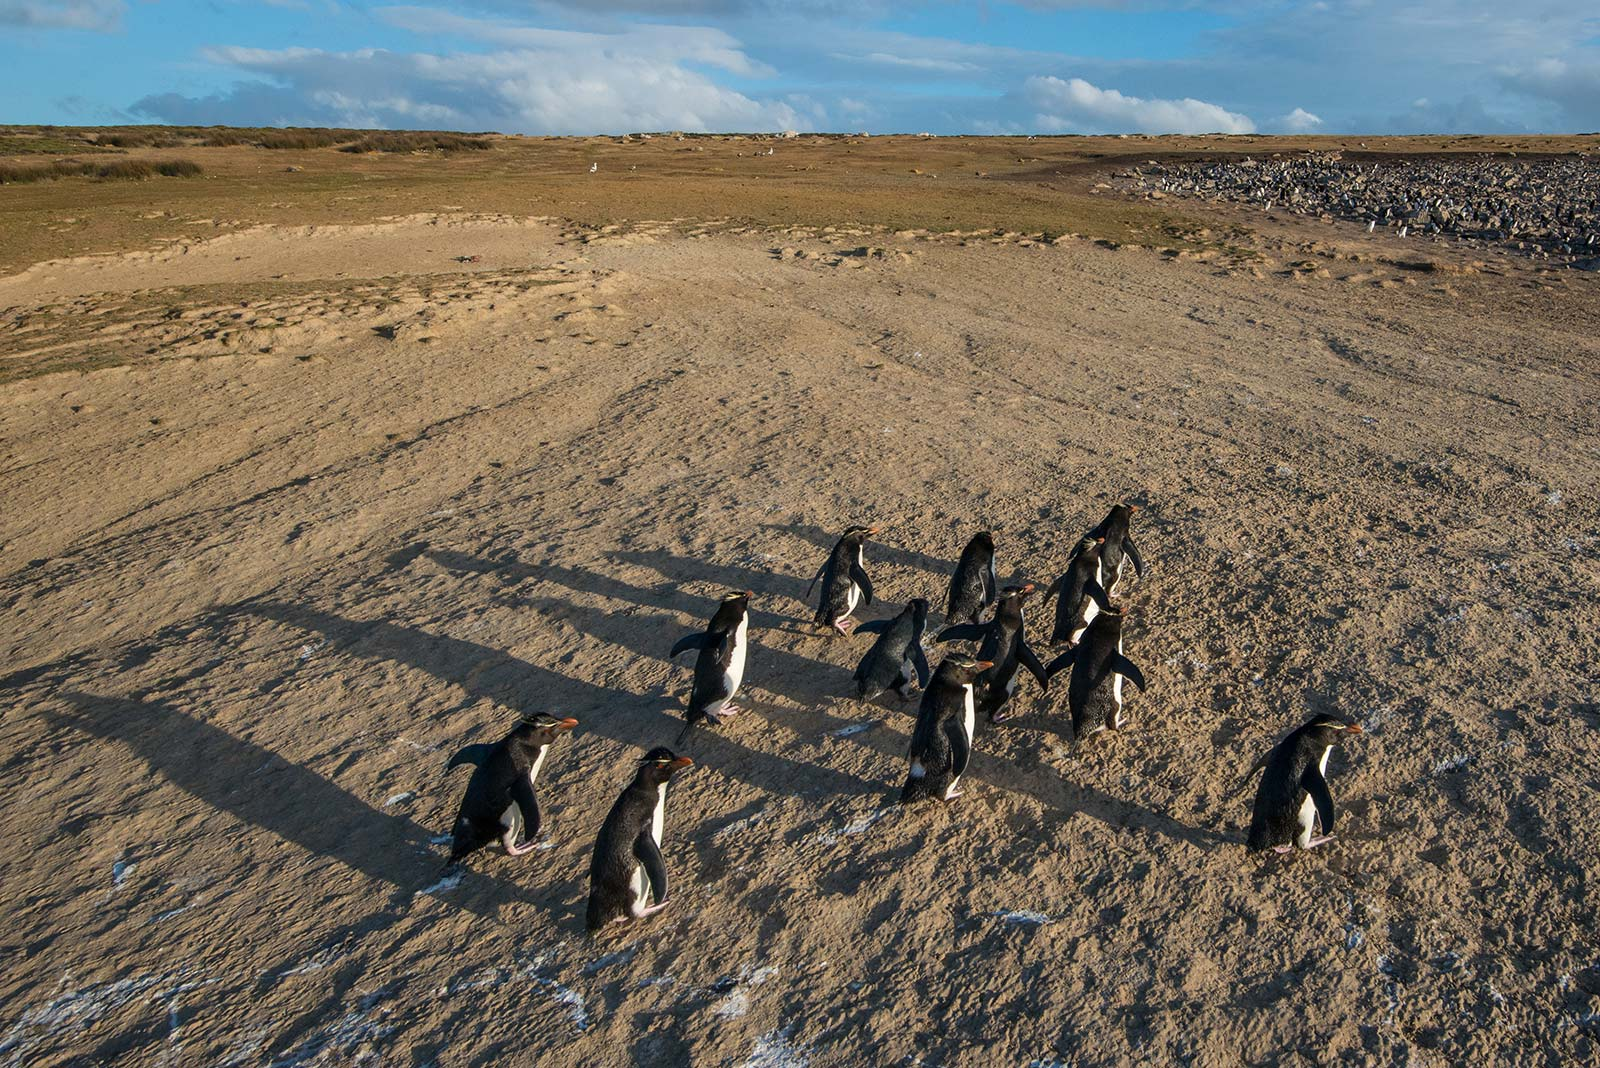 Unprotected: Rockhoppers - Falkland Islands/Islas Malvinas